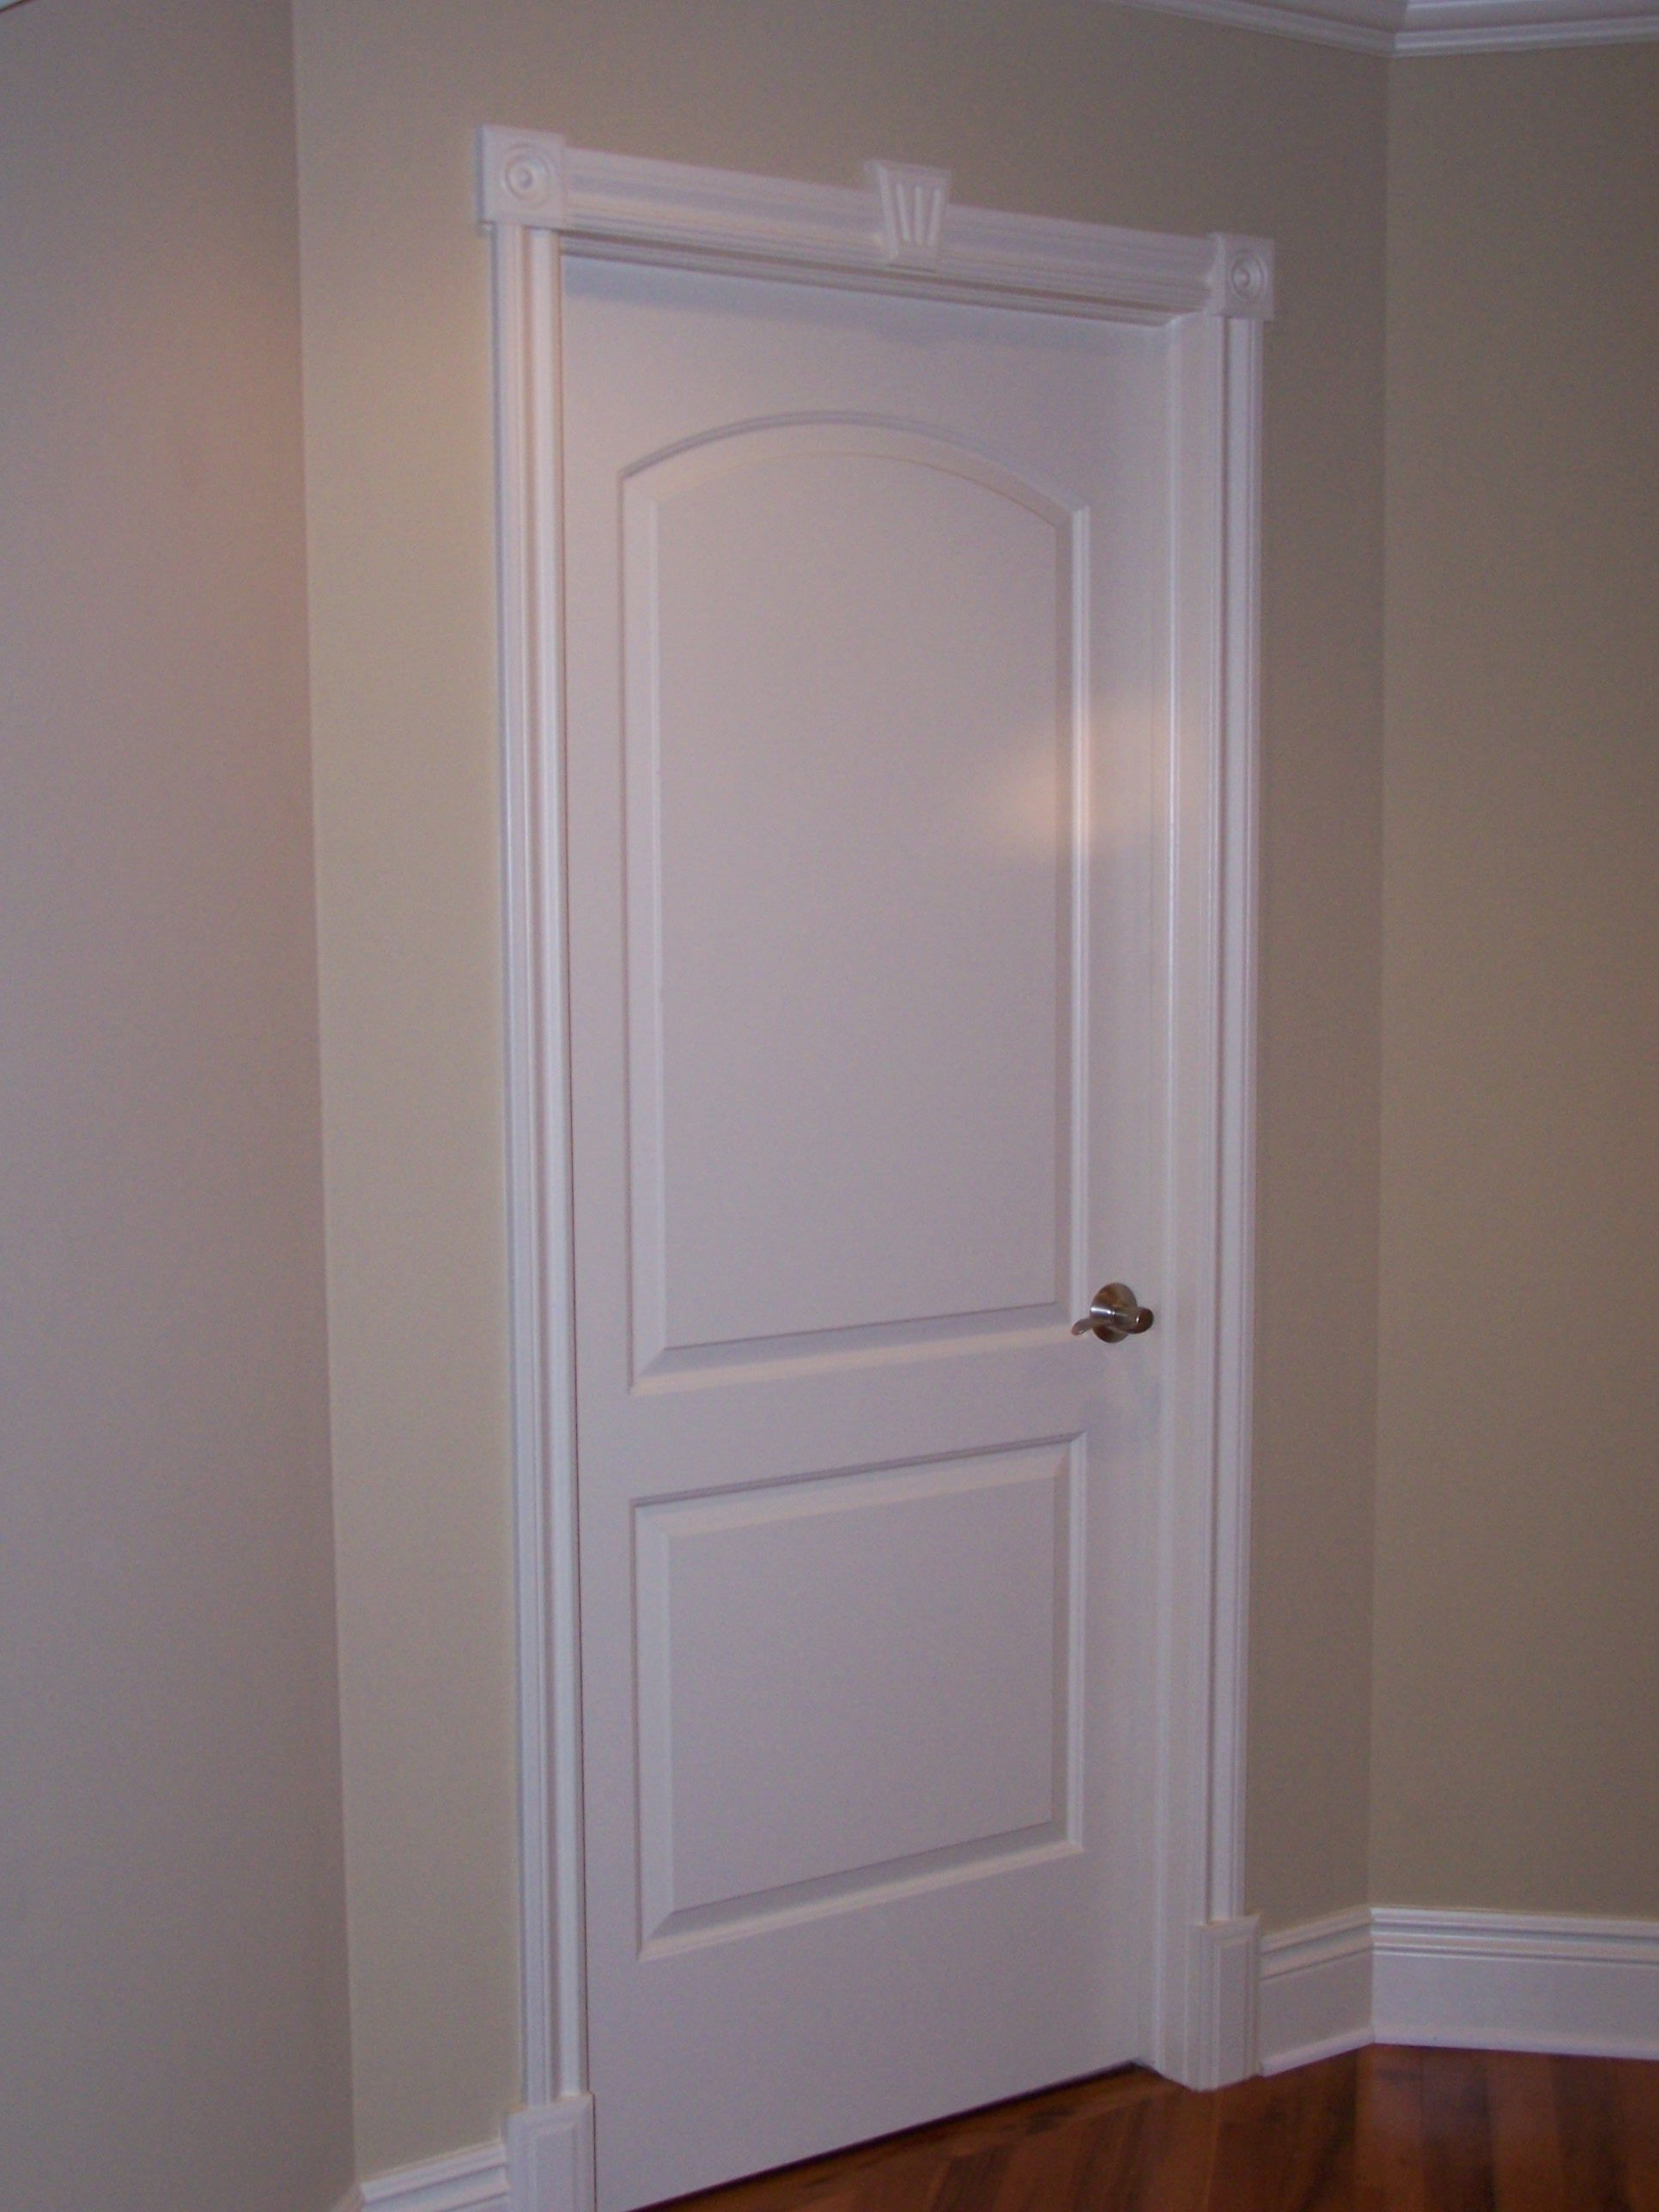 Decorative door trim for the home pinterest door for Unique interior door ideas